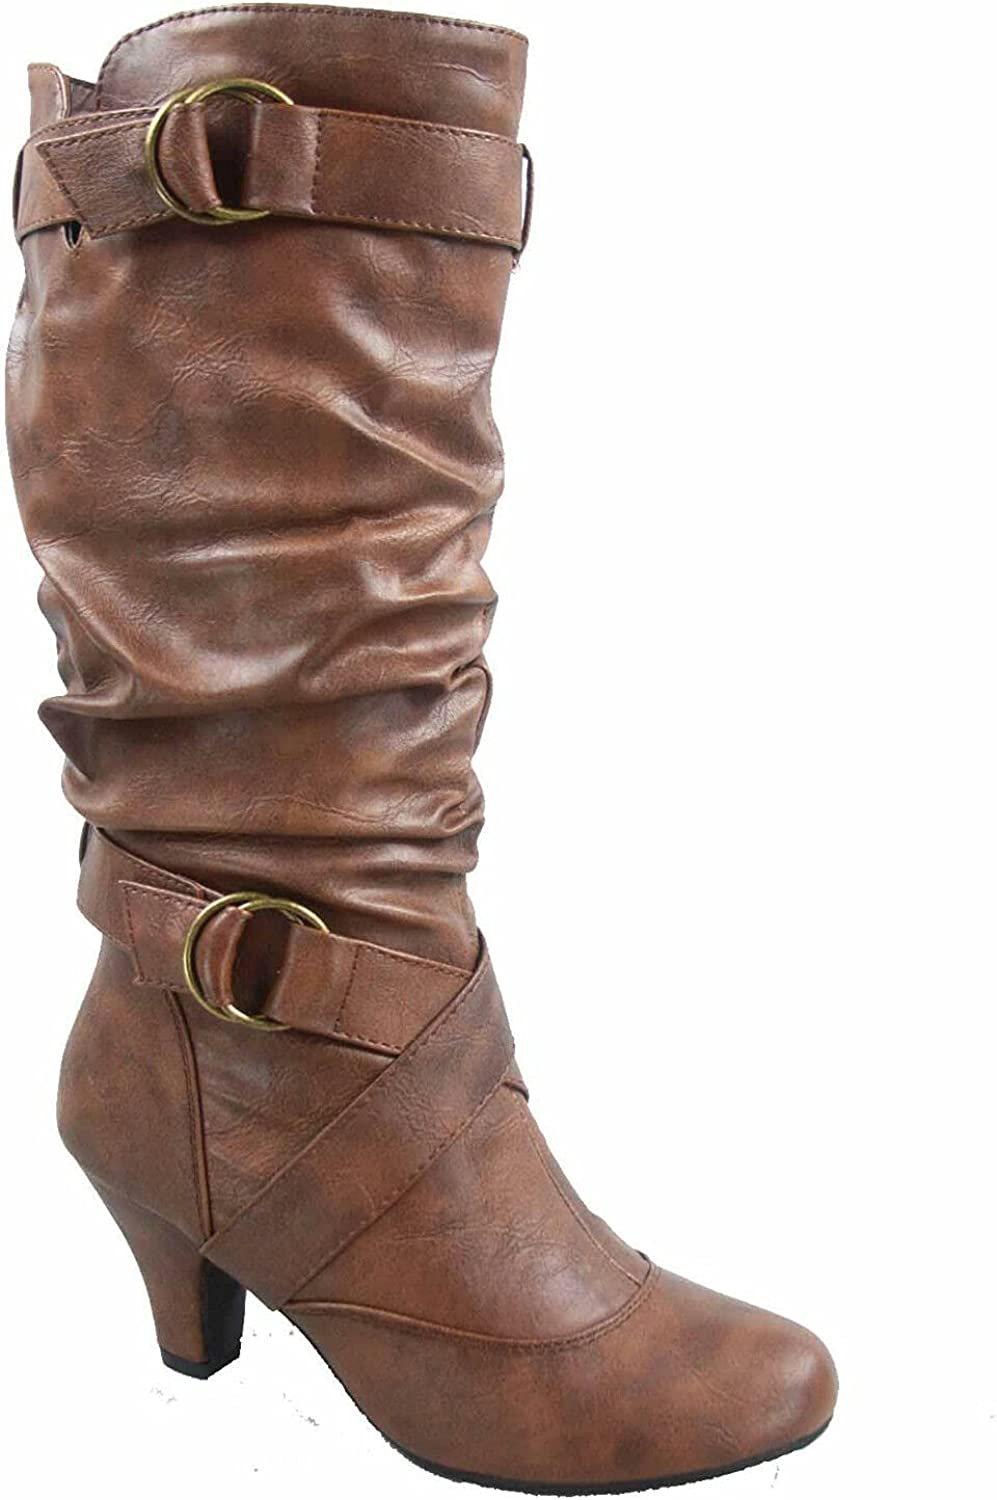 Forever Link Maggie-39 Women's Fashion Low Heel Zipper Slouchy Mid-Calf Boots Shoes (Brown, numeric_7_point_5)